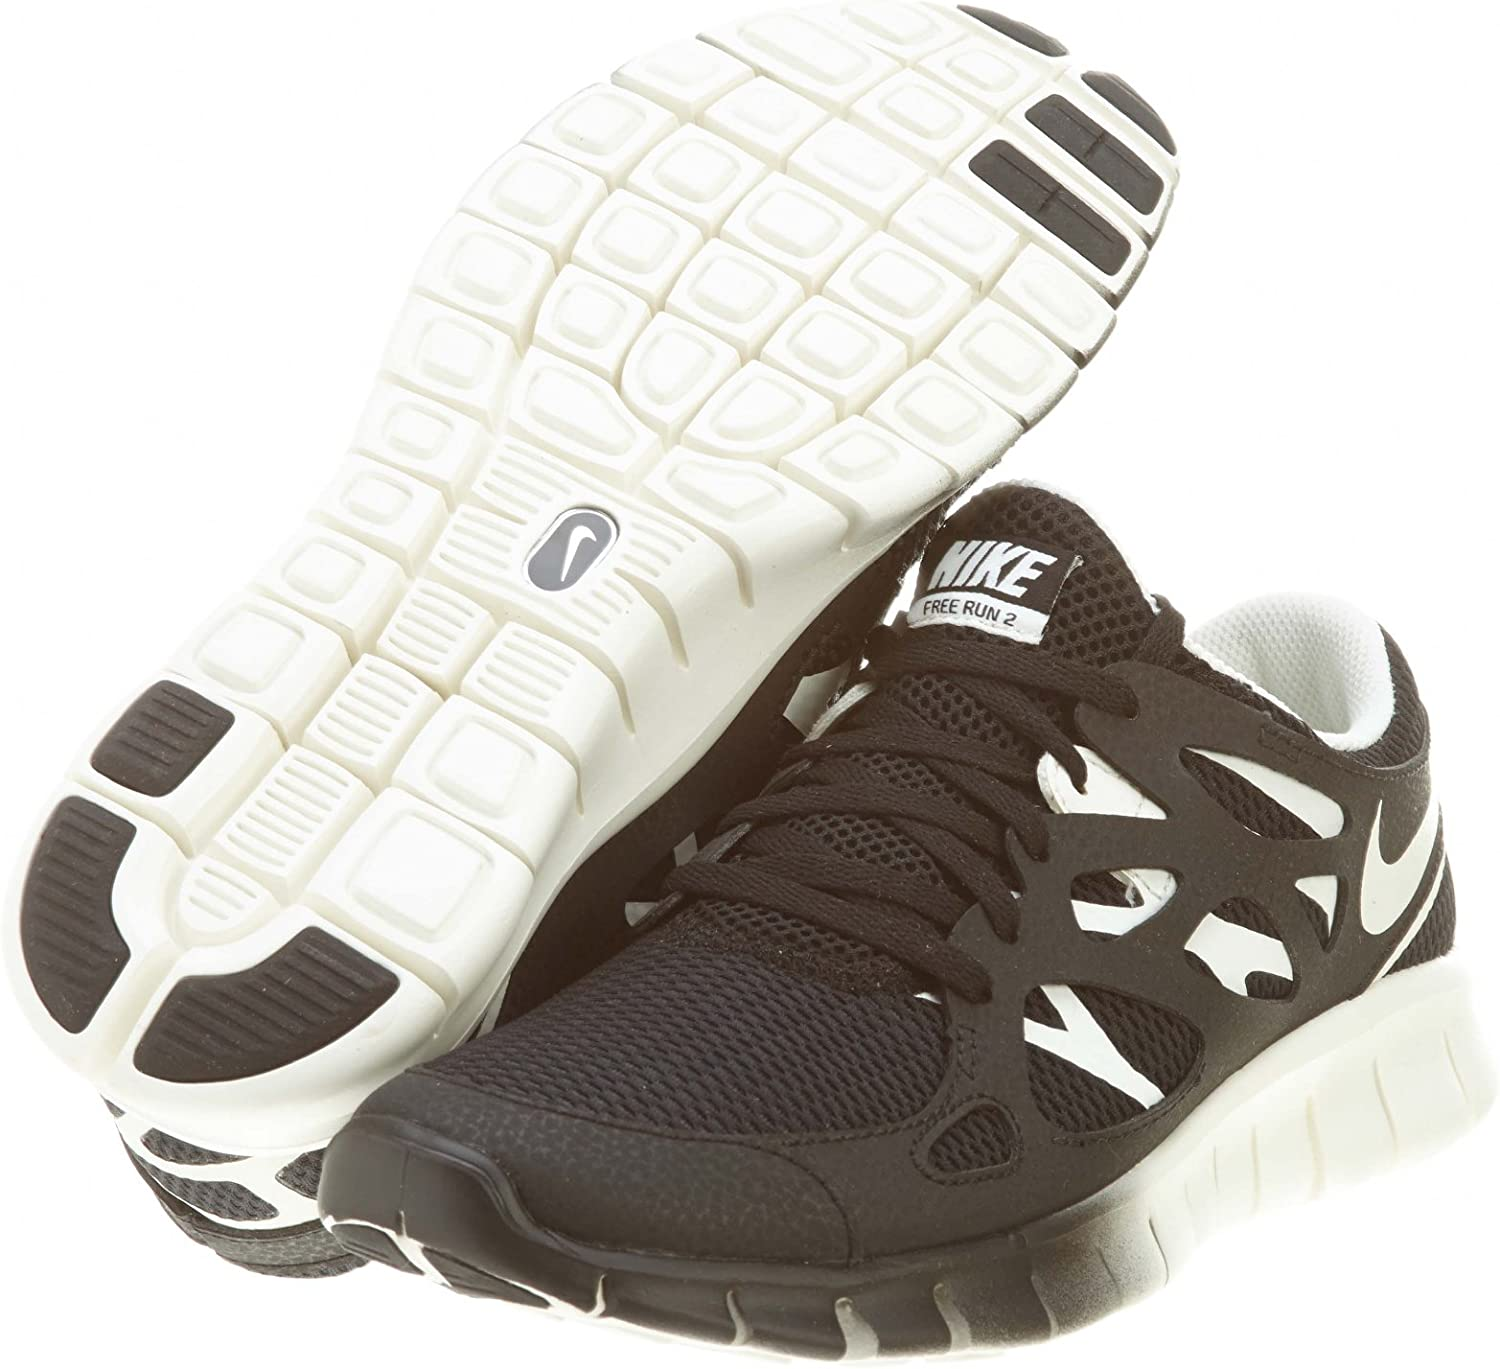 Nike Free Run + 2 Black 536746 004, Hombre Mujer, Nike Running Schuhe, Black-Sail, 37,5: Amazon.es: Deportes y aire libre